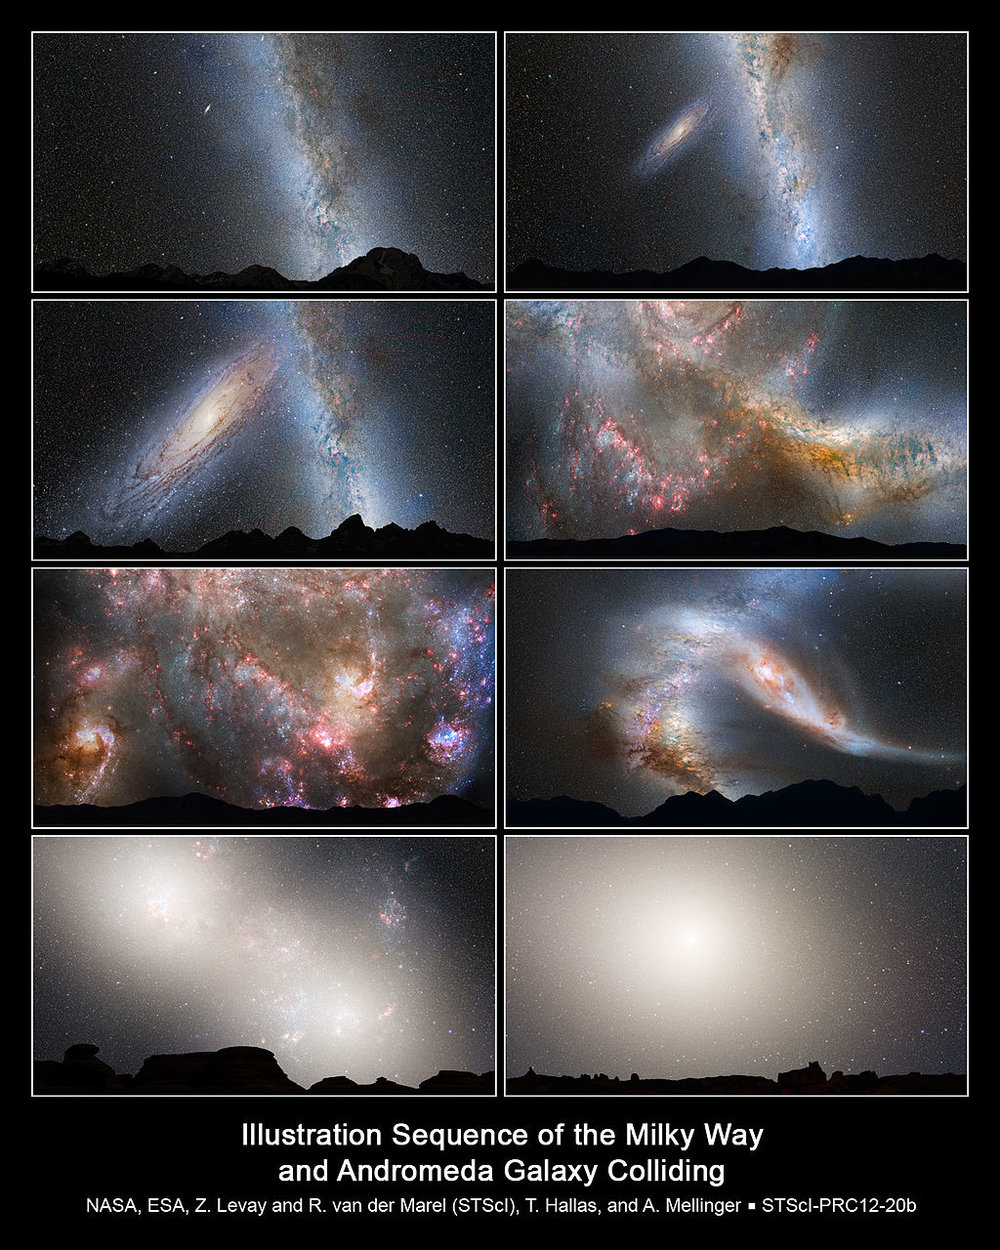 Series_of_photo_illustrations_shows_the_merger_between_our_Milky_Way_and_Andromeda_galaxy.jpg